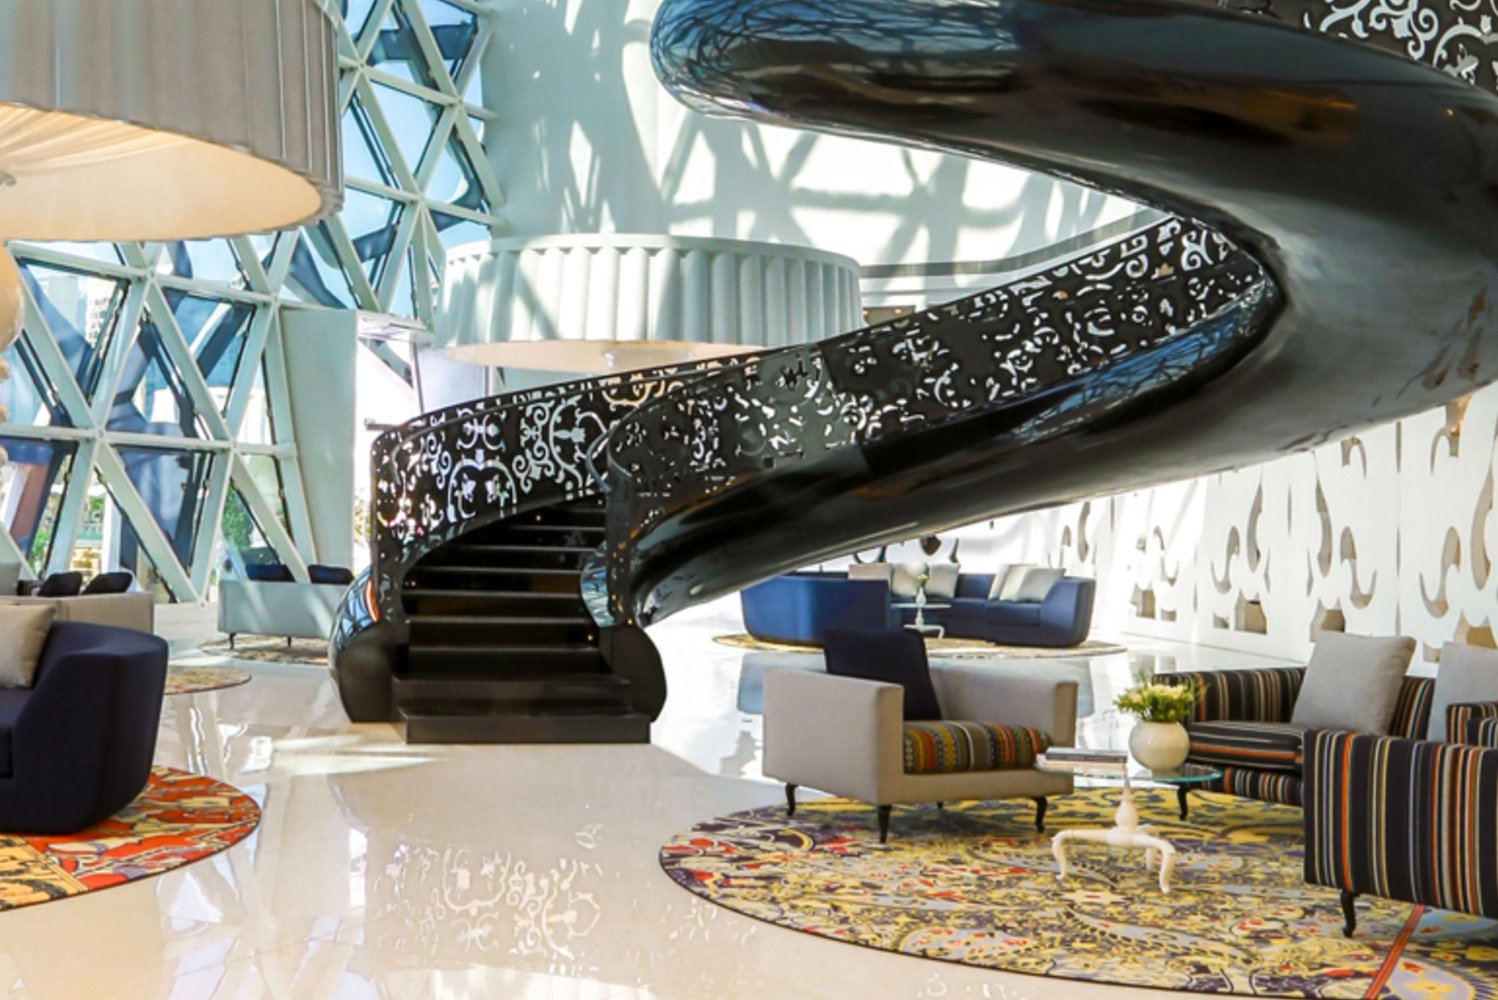 Wanders' signature floating staircase and hand-painted One-Minute Delft blue vases can be seen throughout the property.